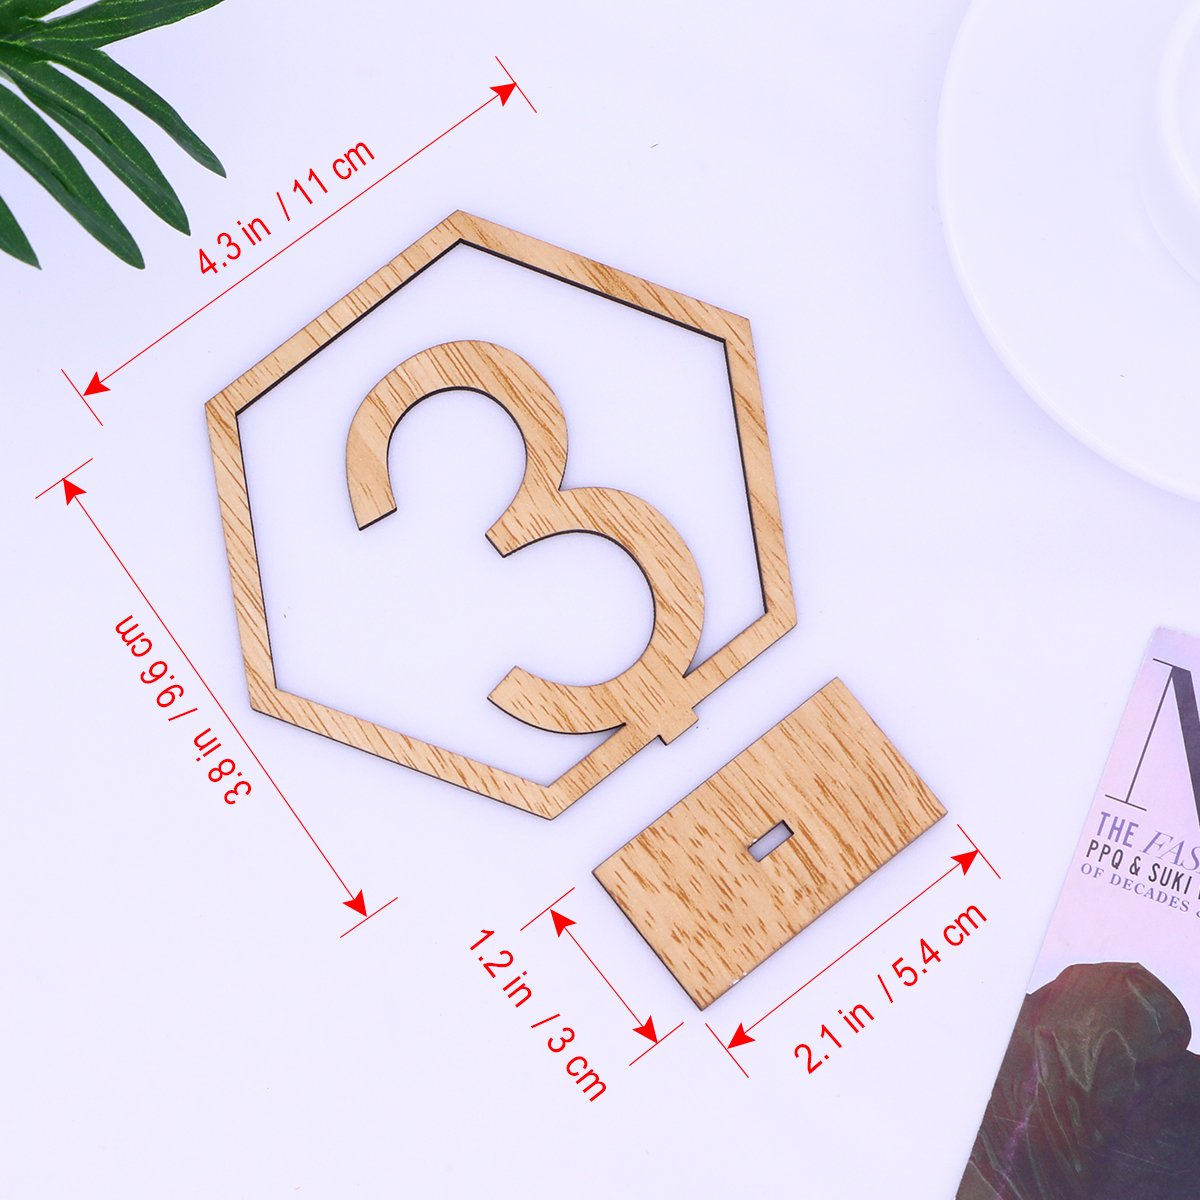 OULII 1-20 Hexagon Wooden Table Numbers with Holder Base for Wedding Birthday Engagement Decoration 20pcs by OULII (Image #6)